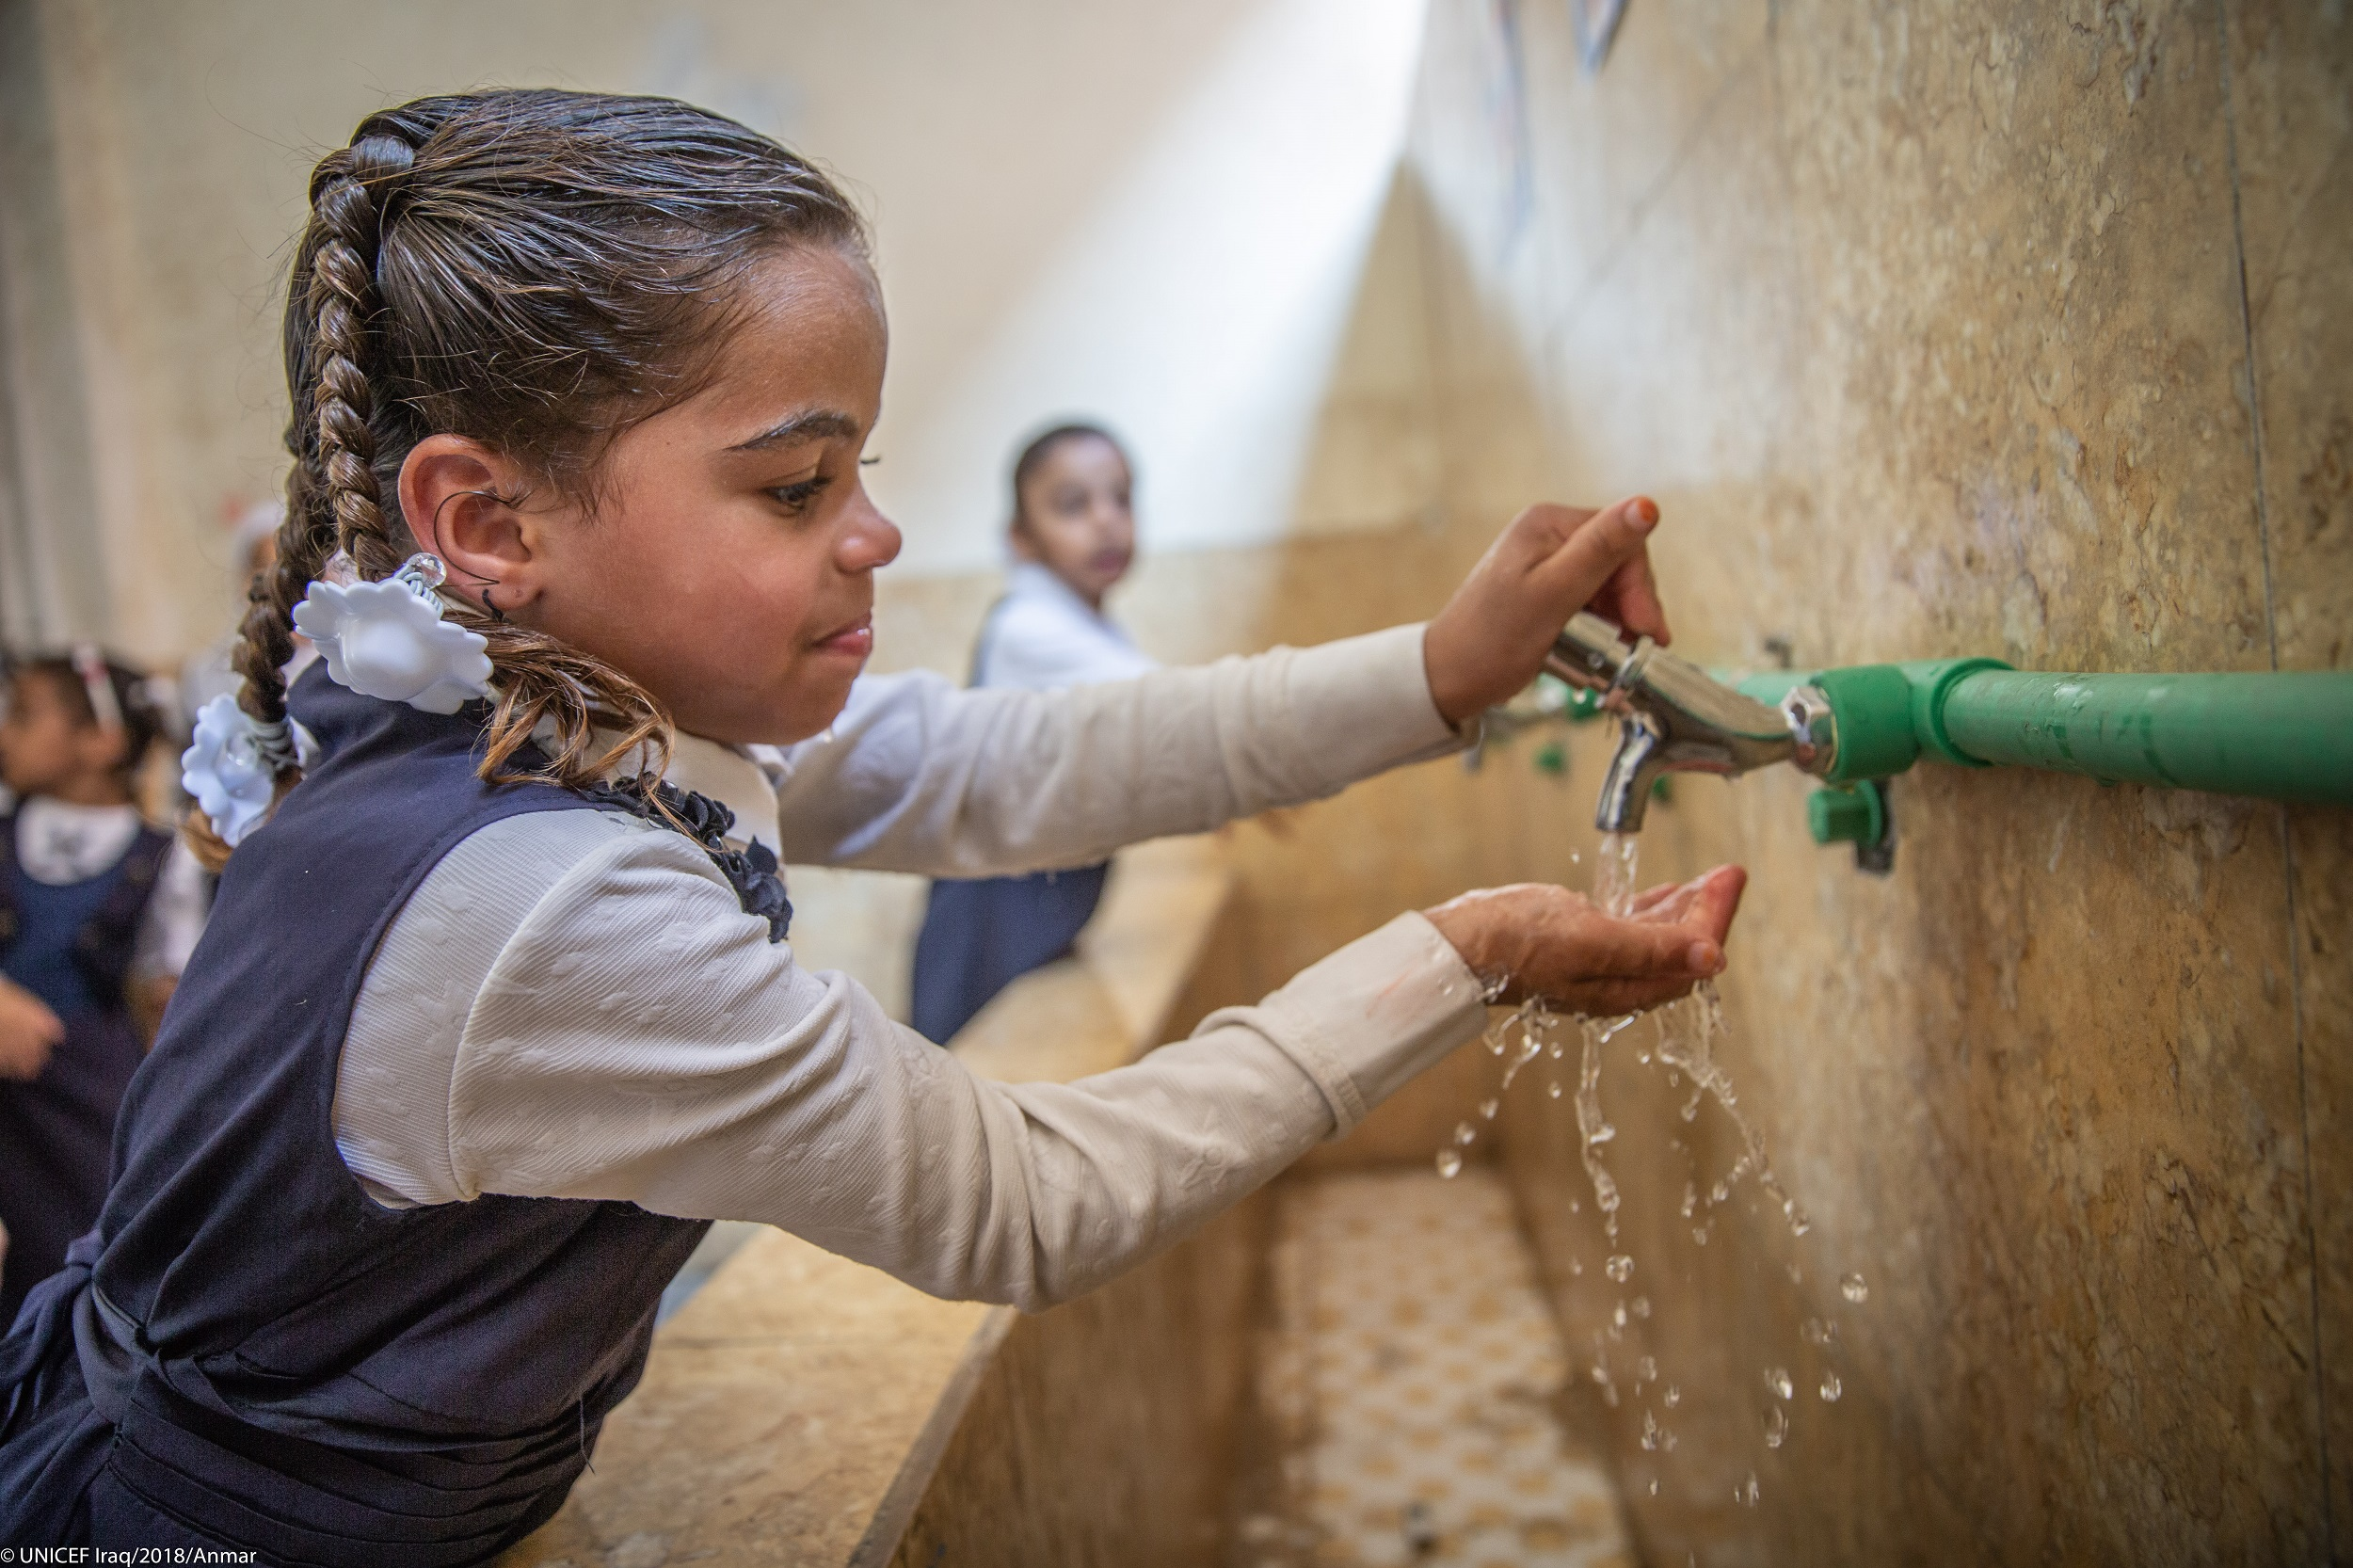 A school girl collects water in her hands from a communal water tap.